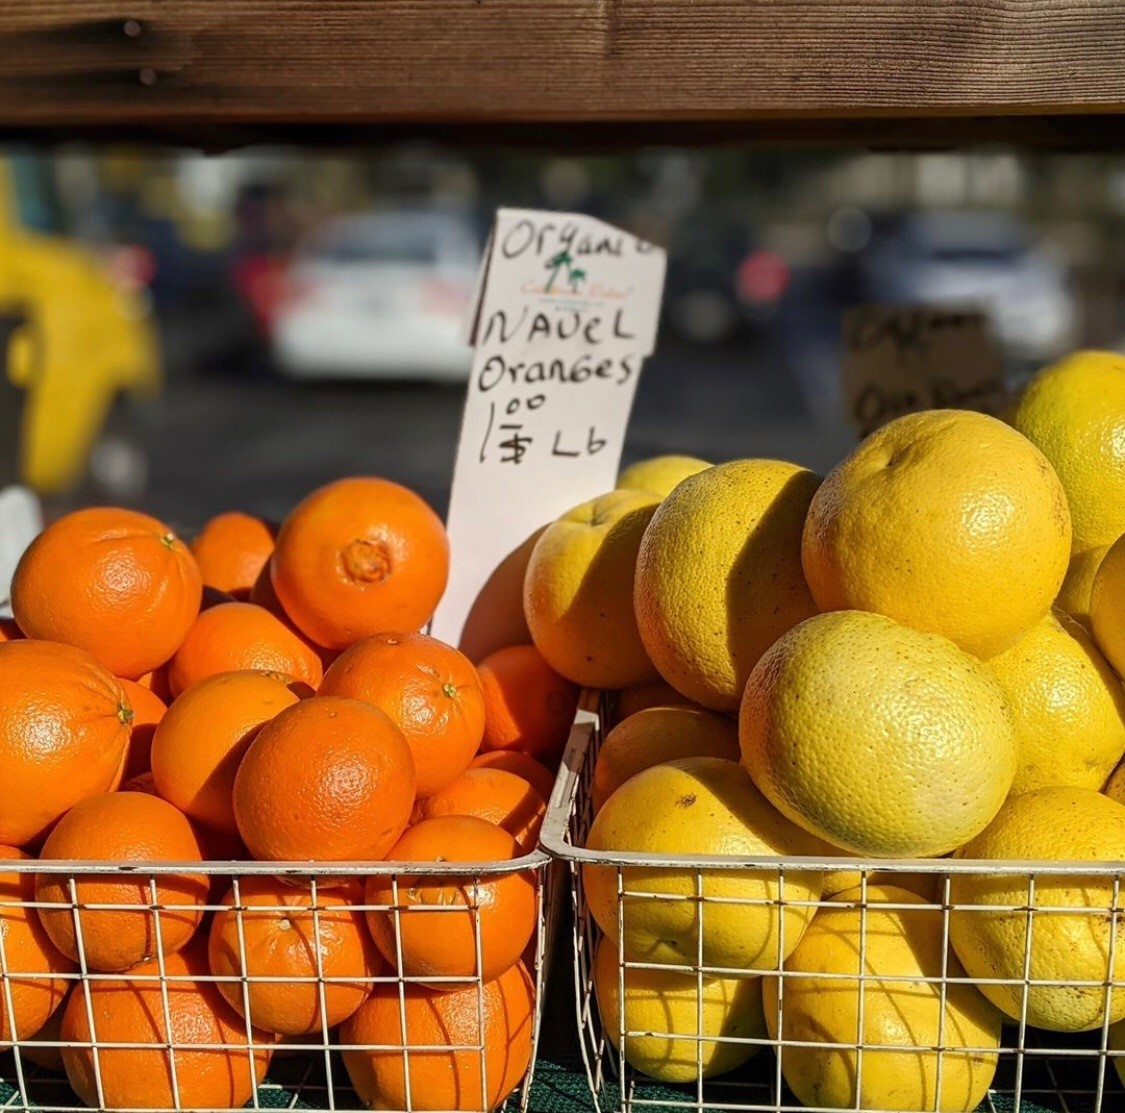 Shop Fresh & Support Small at the SOCO Farmer's Market